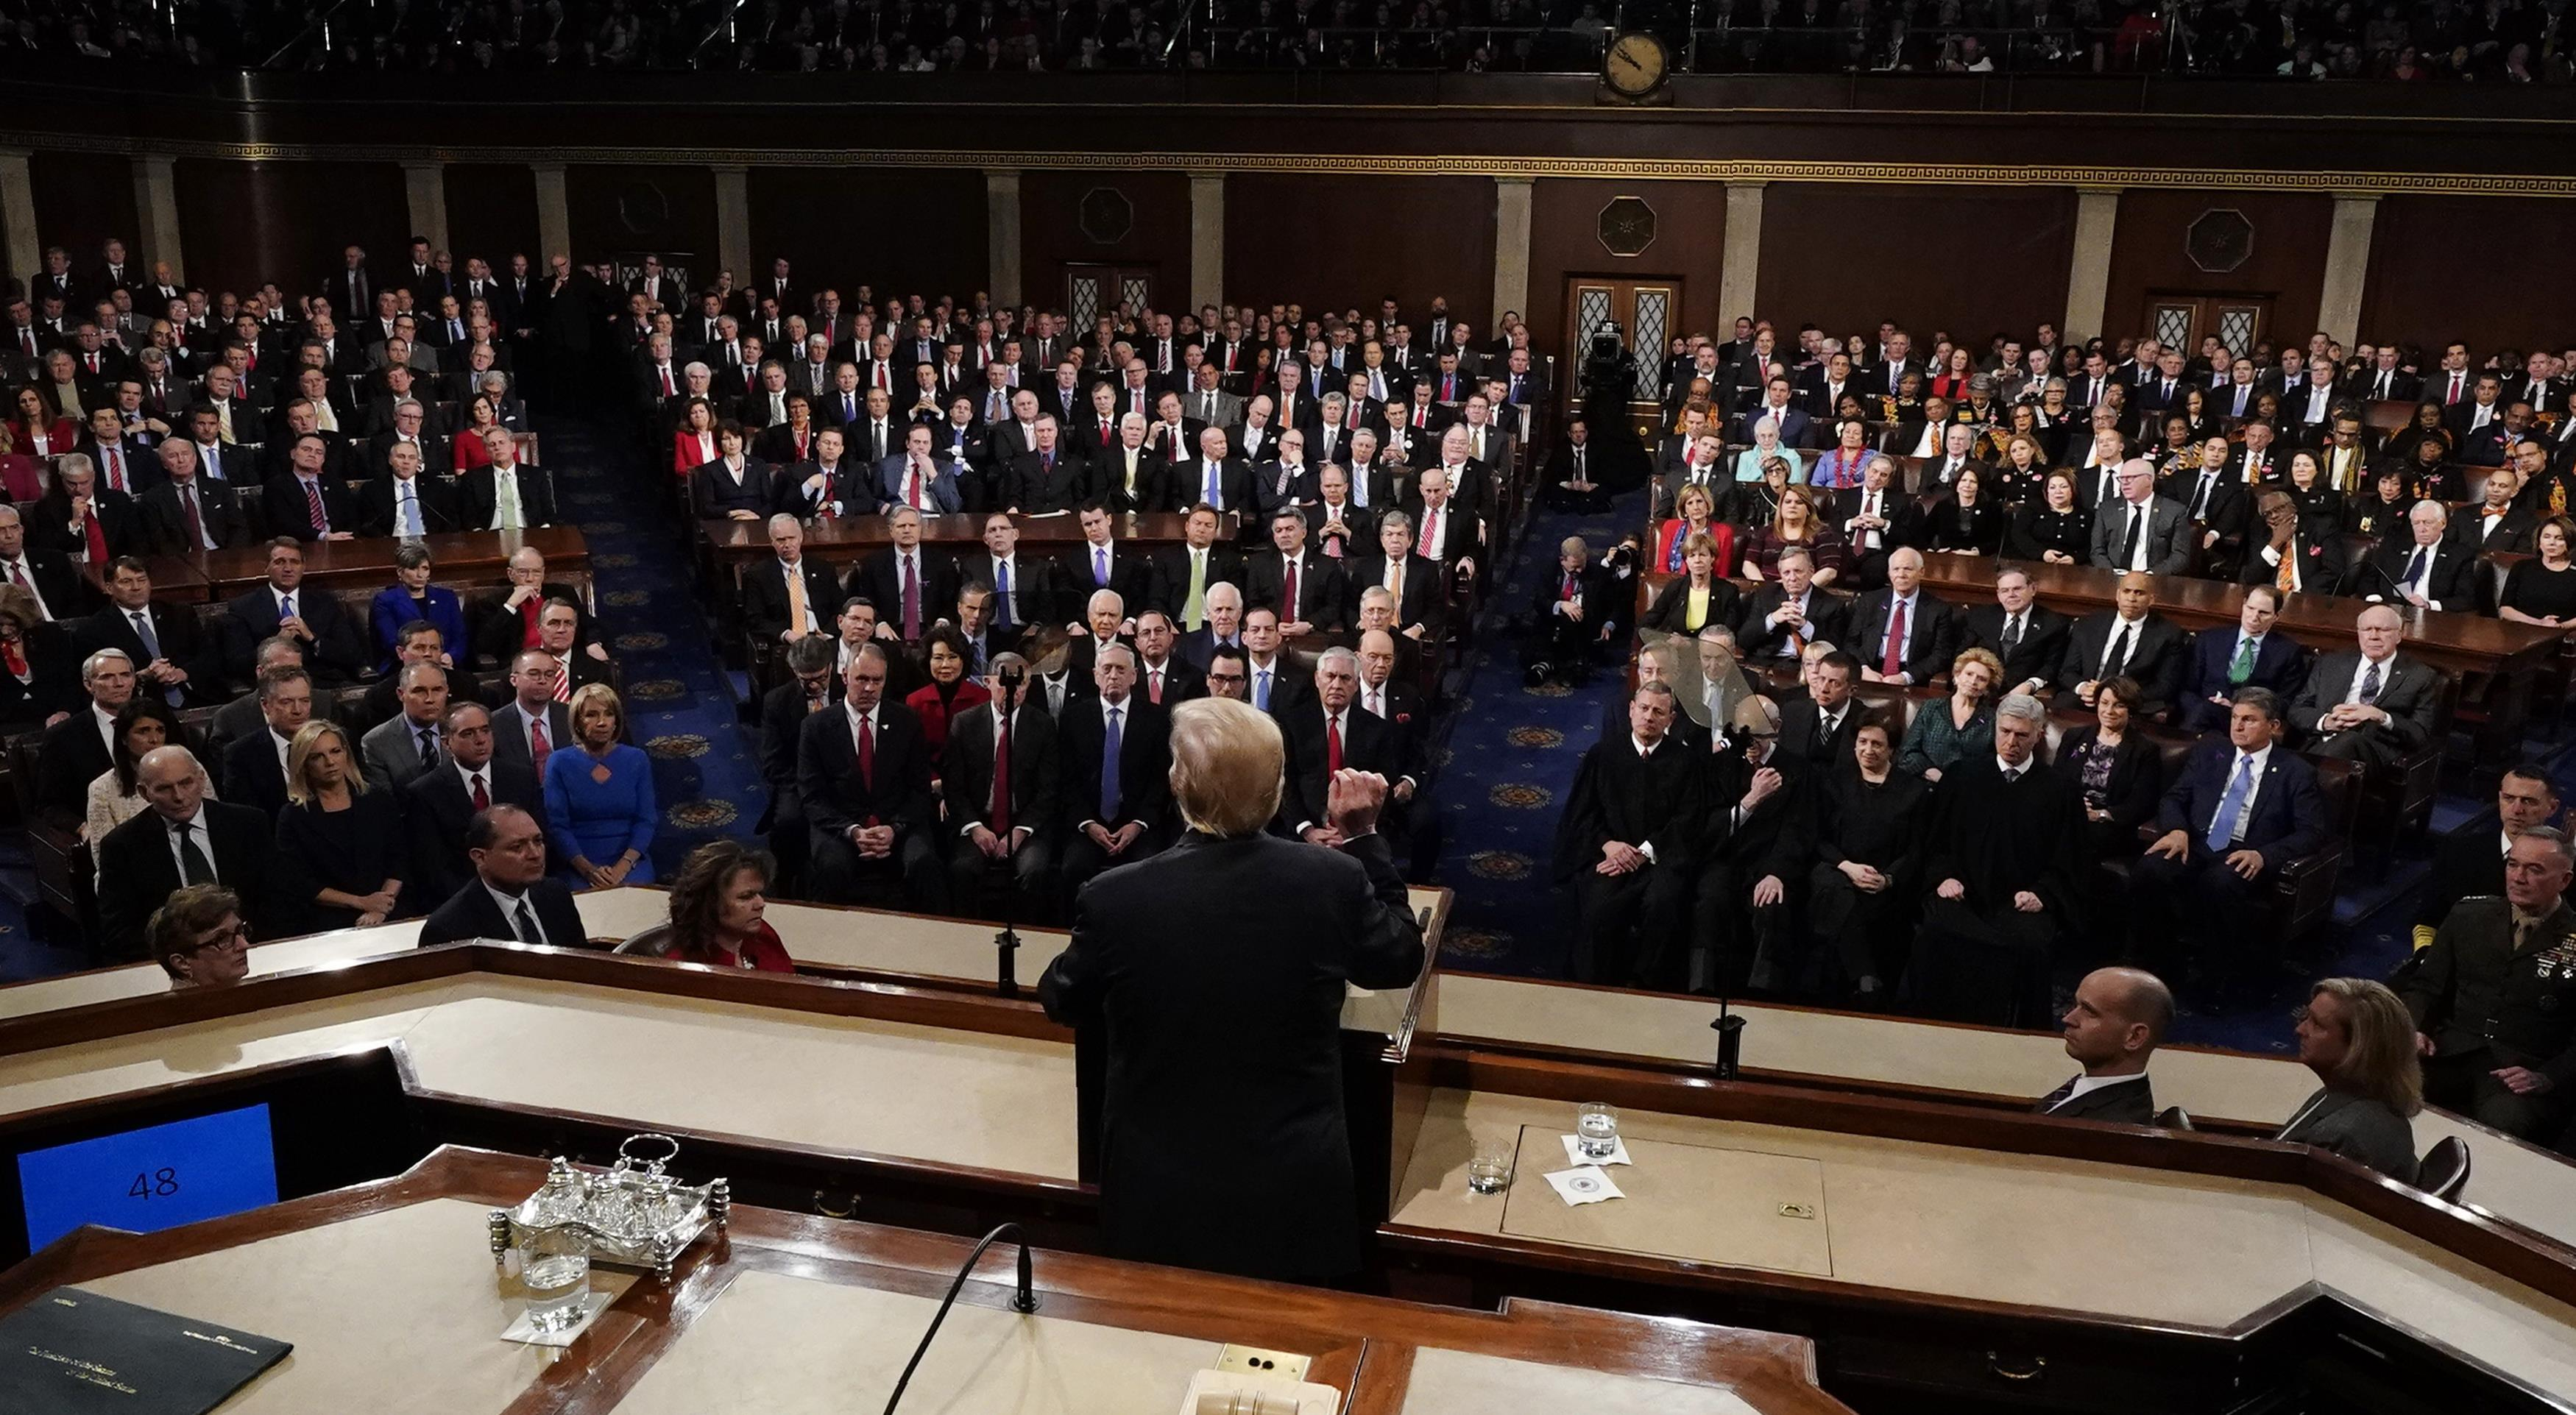 President Trump delivers his State of the Union address in Washington